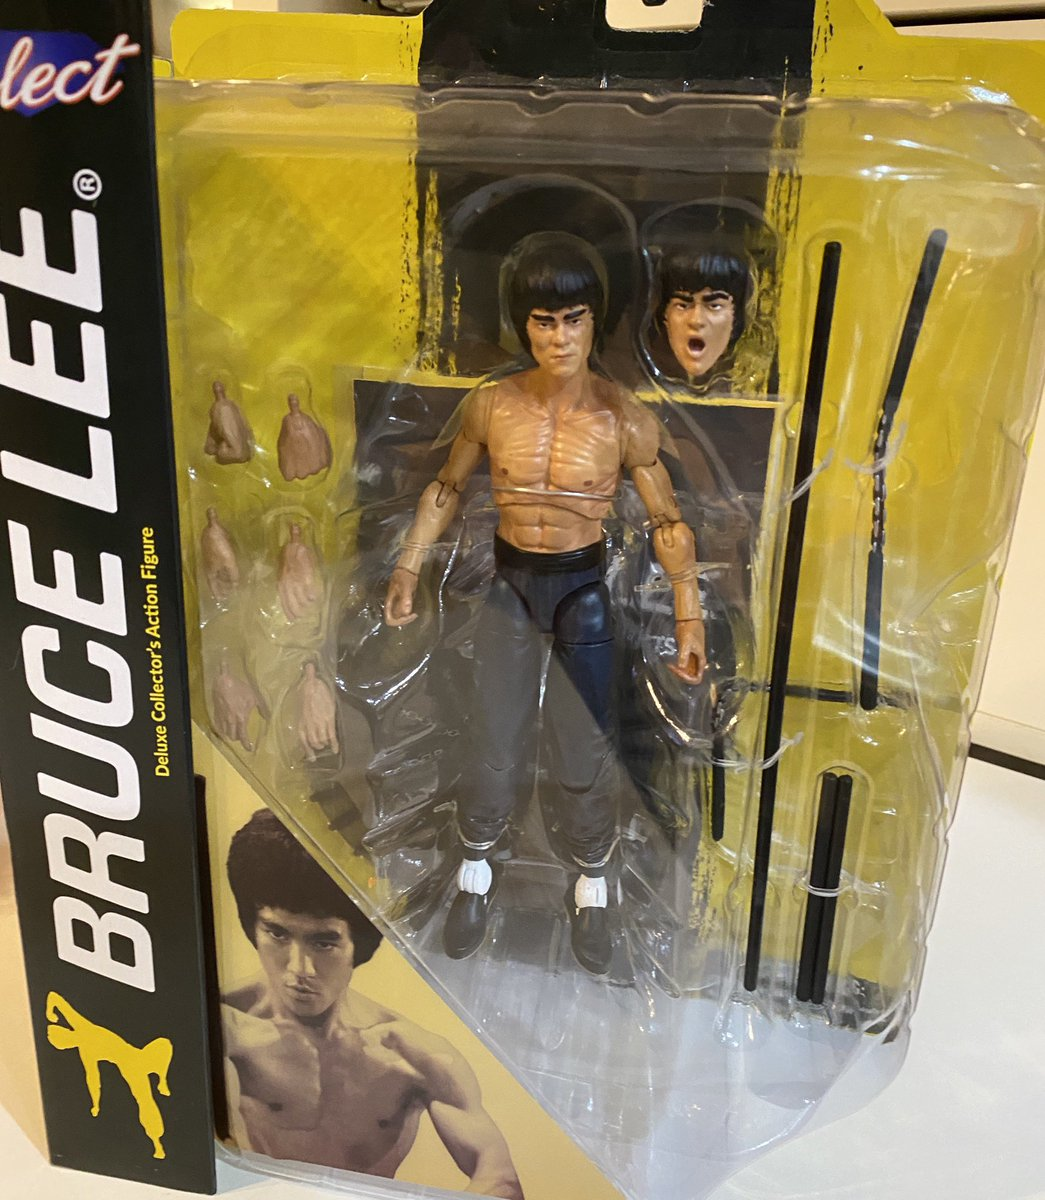 I had to! And I love this figure. He will be joining the #NinjaTurtles on my shelf.  #BruceLee #EnterTheDragon https://t.co/6qi3taYLxM